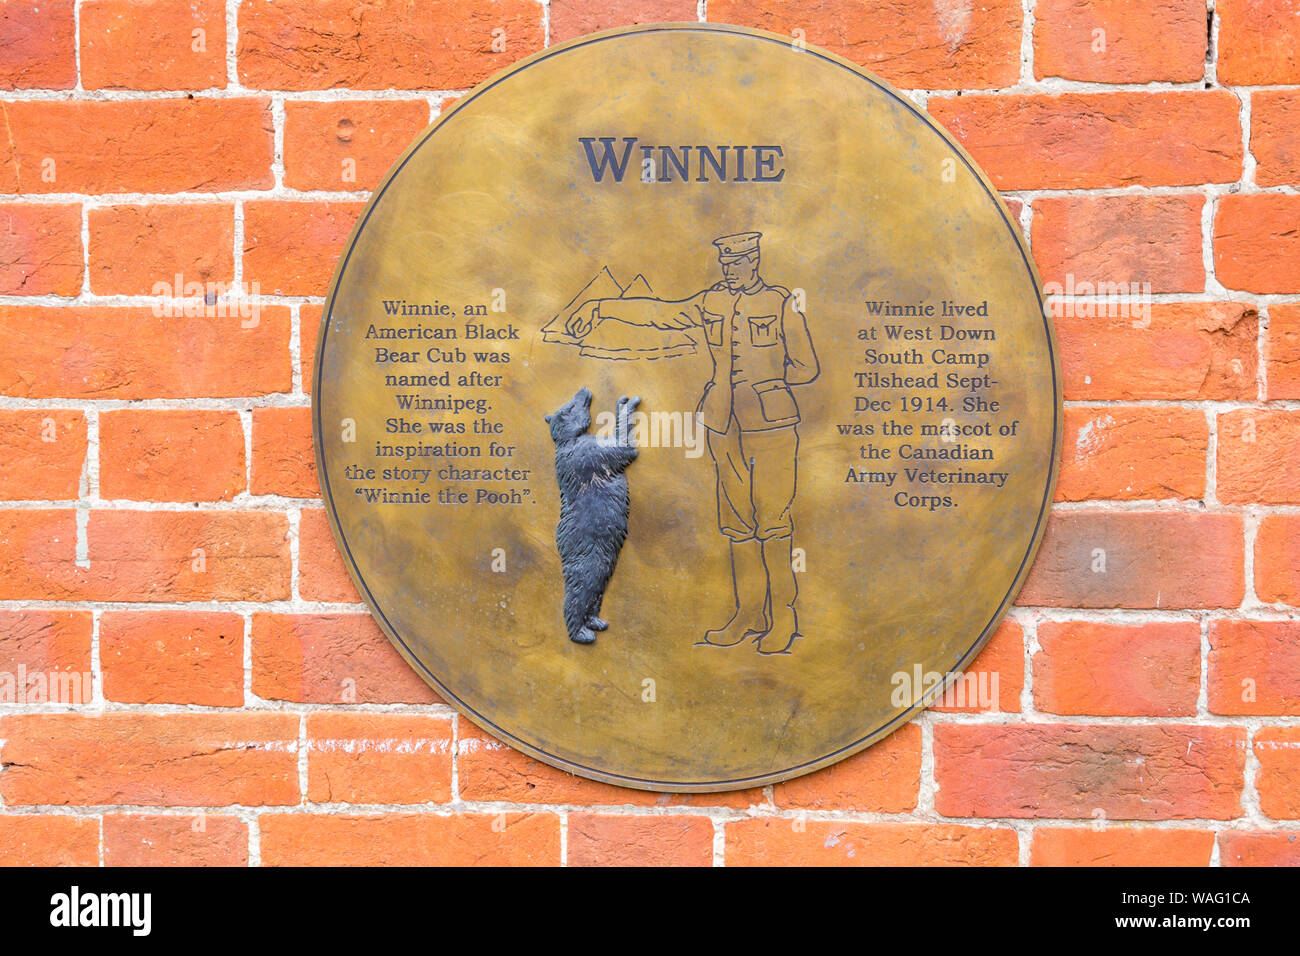 Winnie plaque on wall of Tilshead Village Hall at Tilshead, near Salisbury, Wiltshire UK in August Stock Photo